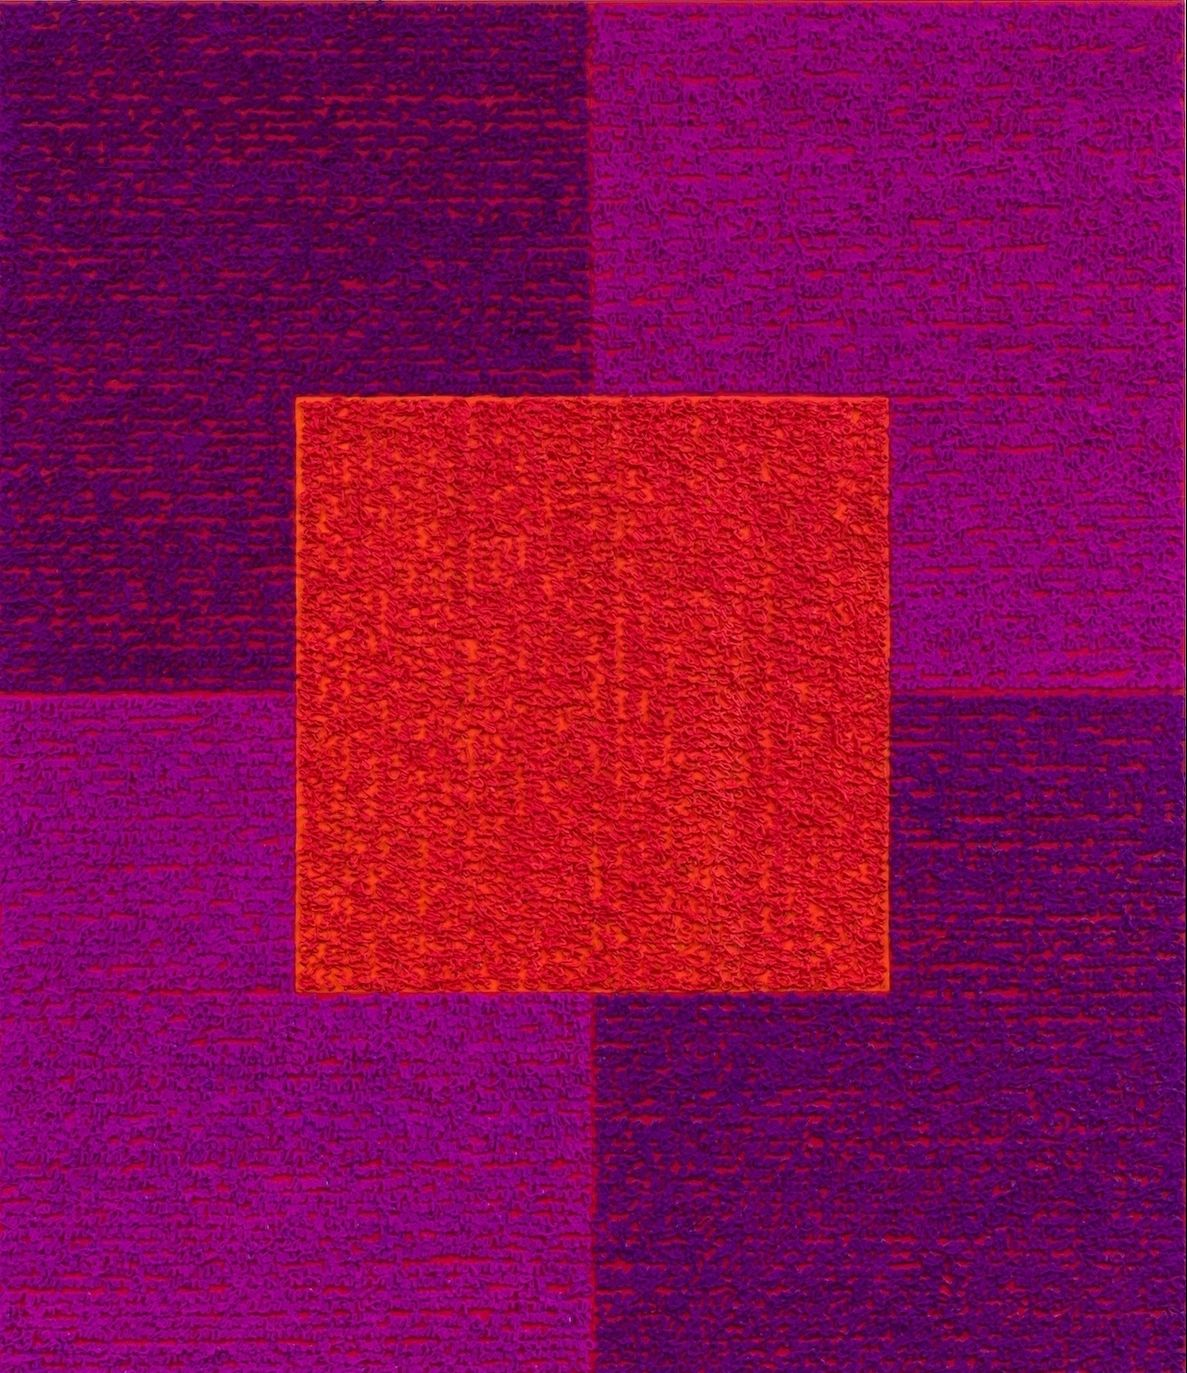 Violets Red, 2013, , Acrylic paint on bent aluminum panel